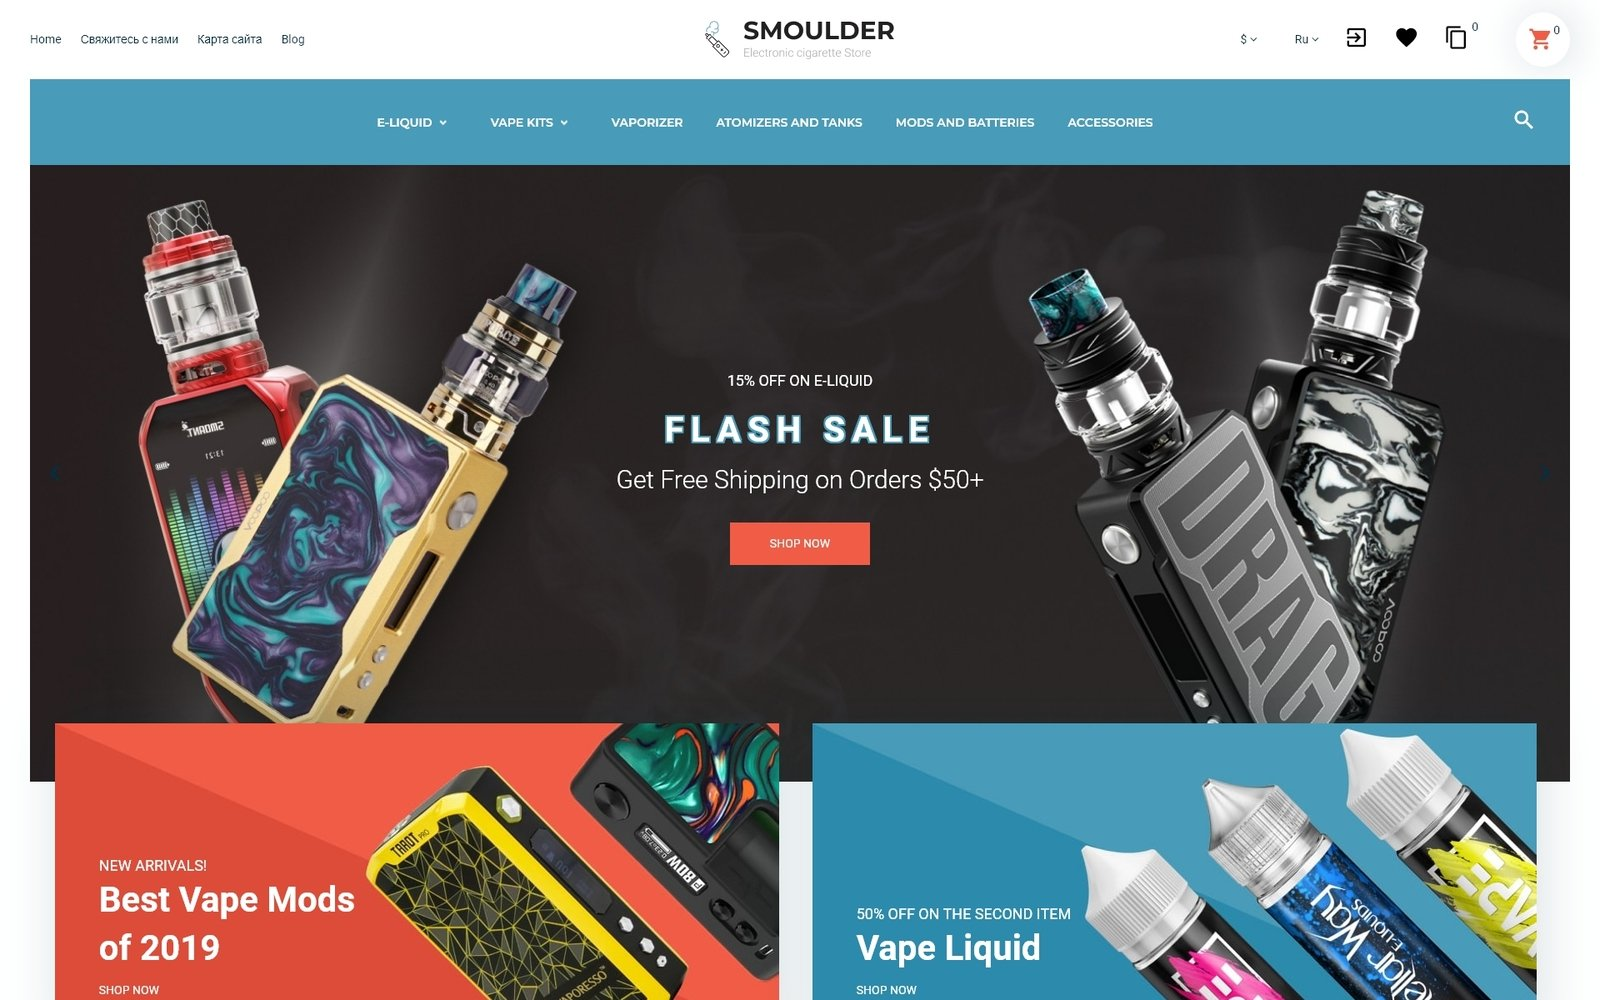 """Smoulder - E-cigarette Website Design"" thème PrestaShop adaptatif #92990 - screenshot"